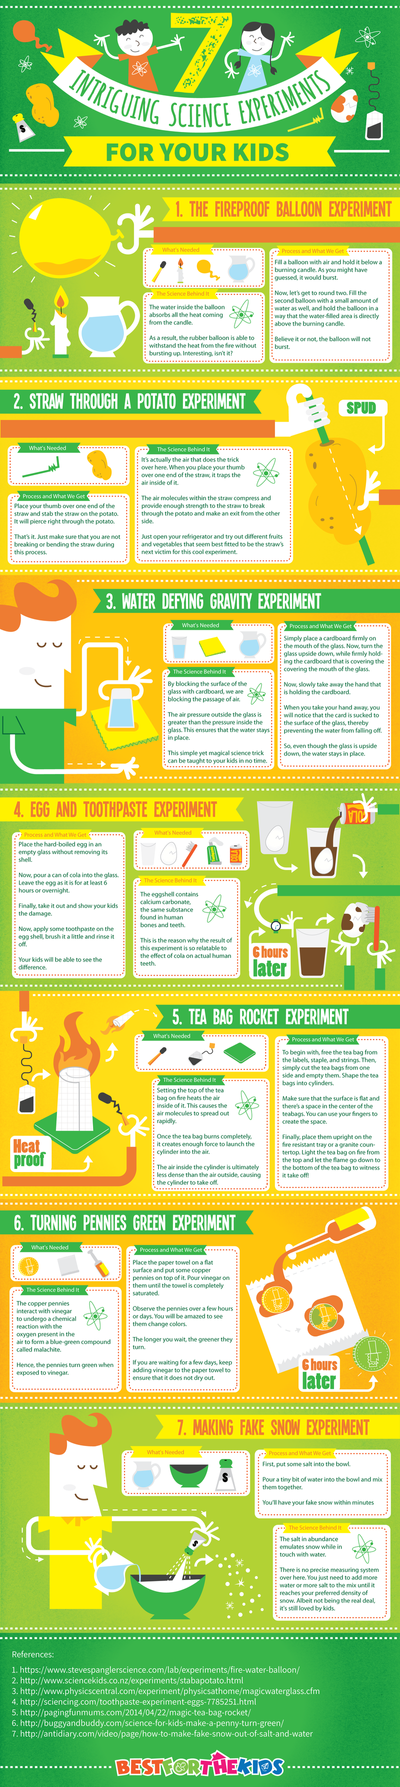 Summer-Activities-Science-Experiments-for-Kids.png